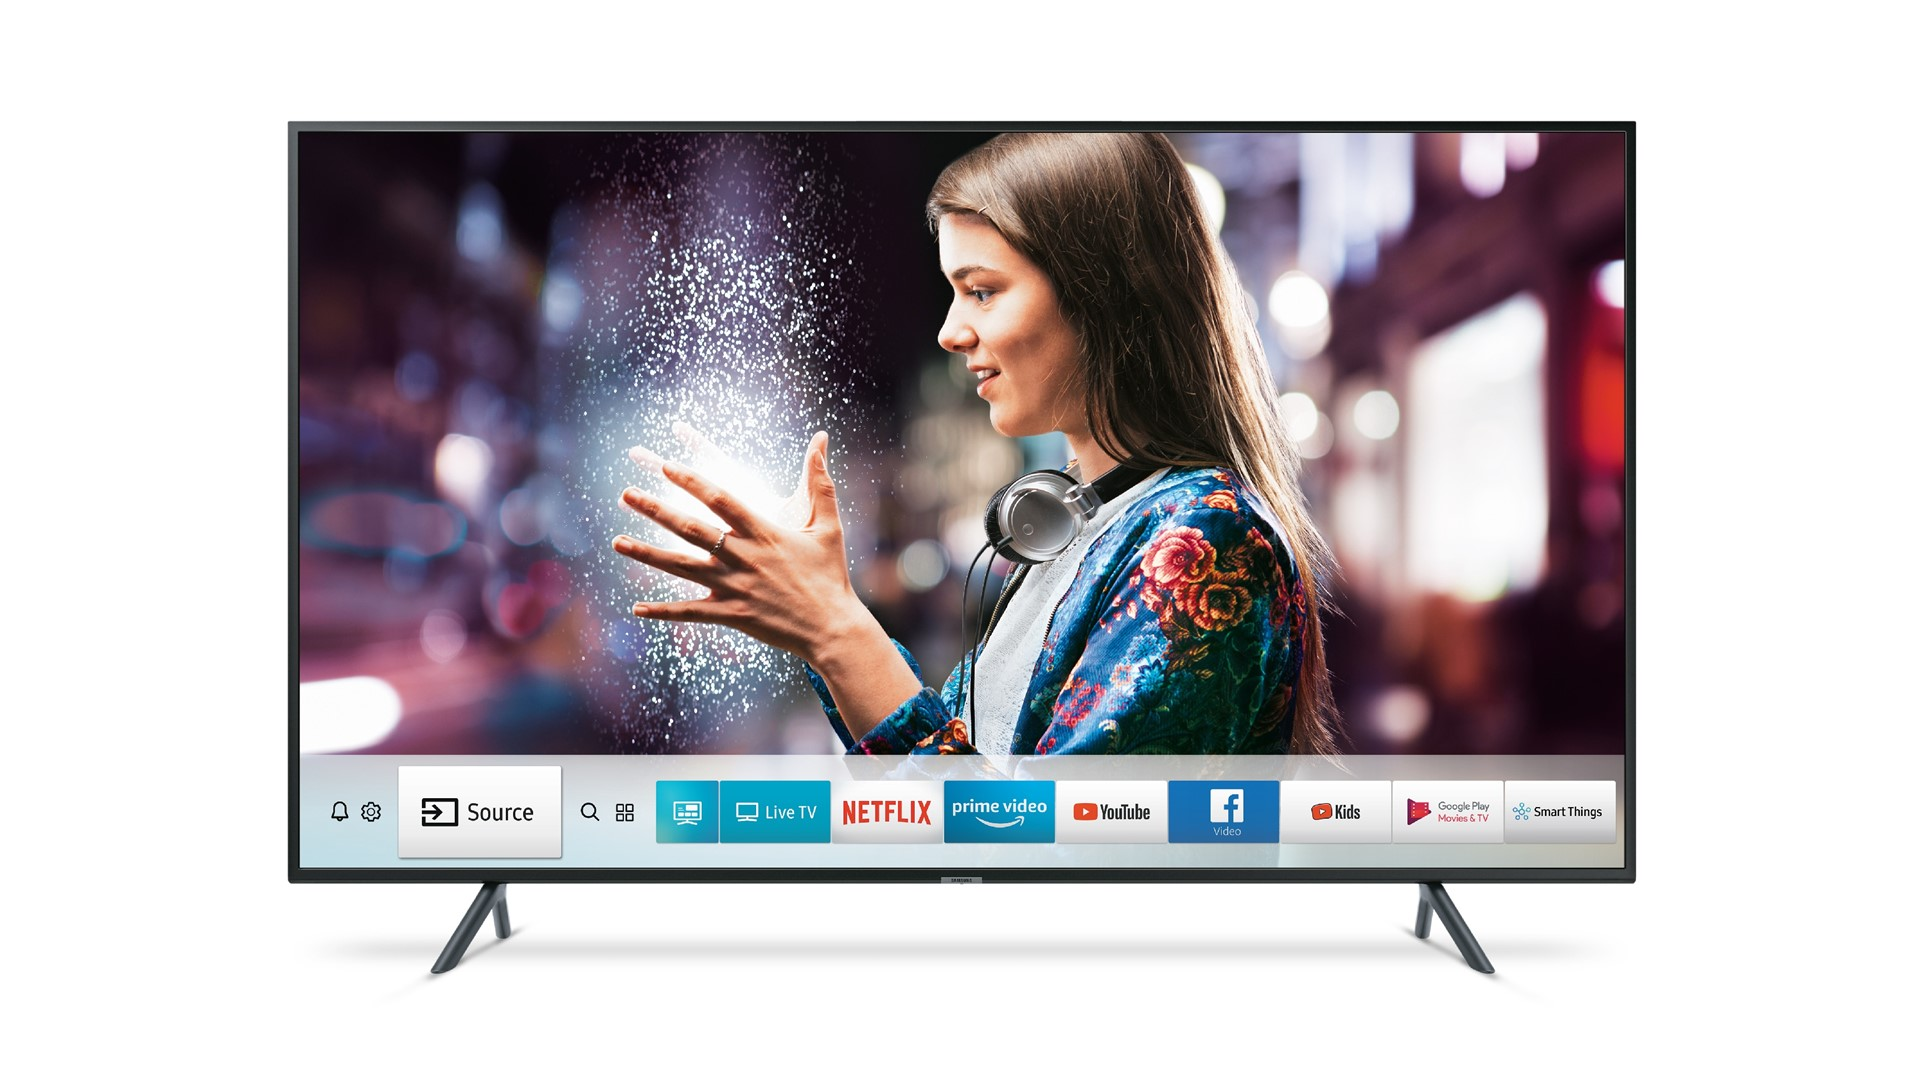 Samsung announces refreshed Smart TV range in India 3